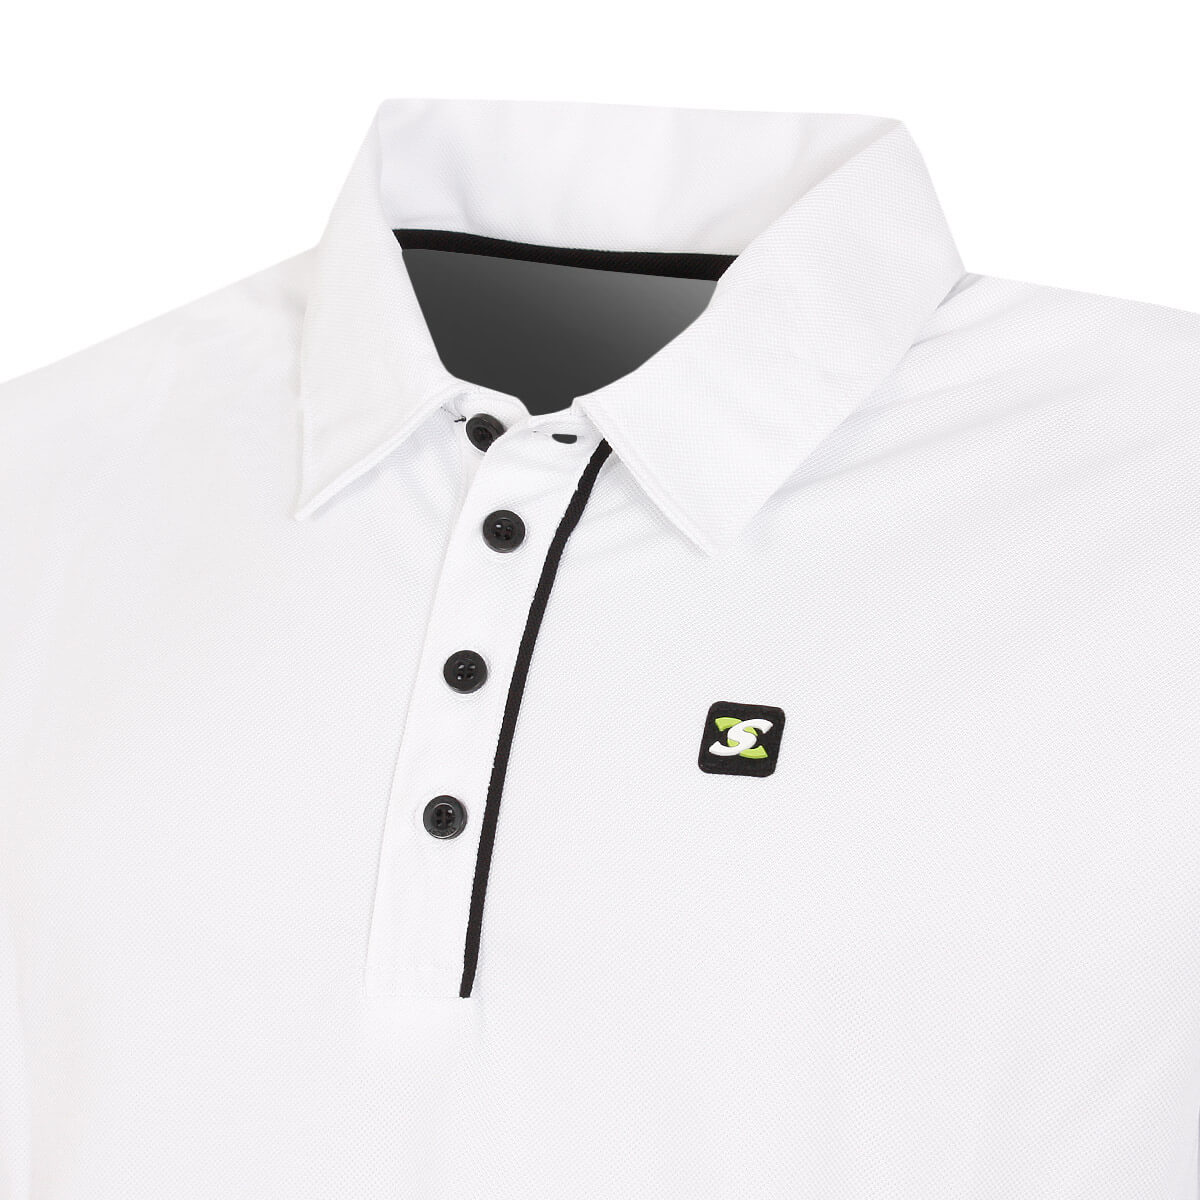 Stuburt-Mens-Urban-Long-Sleeve-Wicking-Breathable-Golf-Polo-Shirt-33-OFF-RRP thumbnail 21